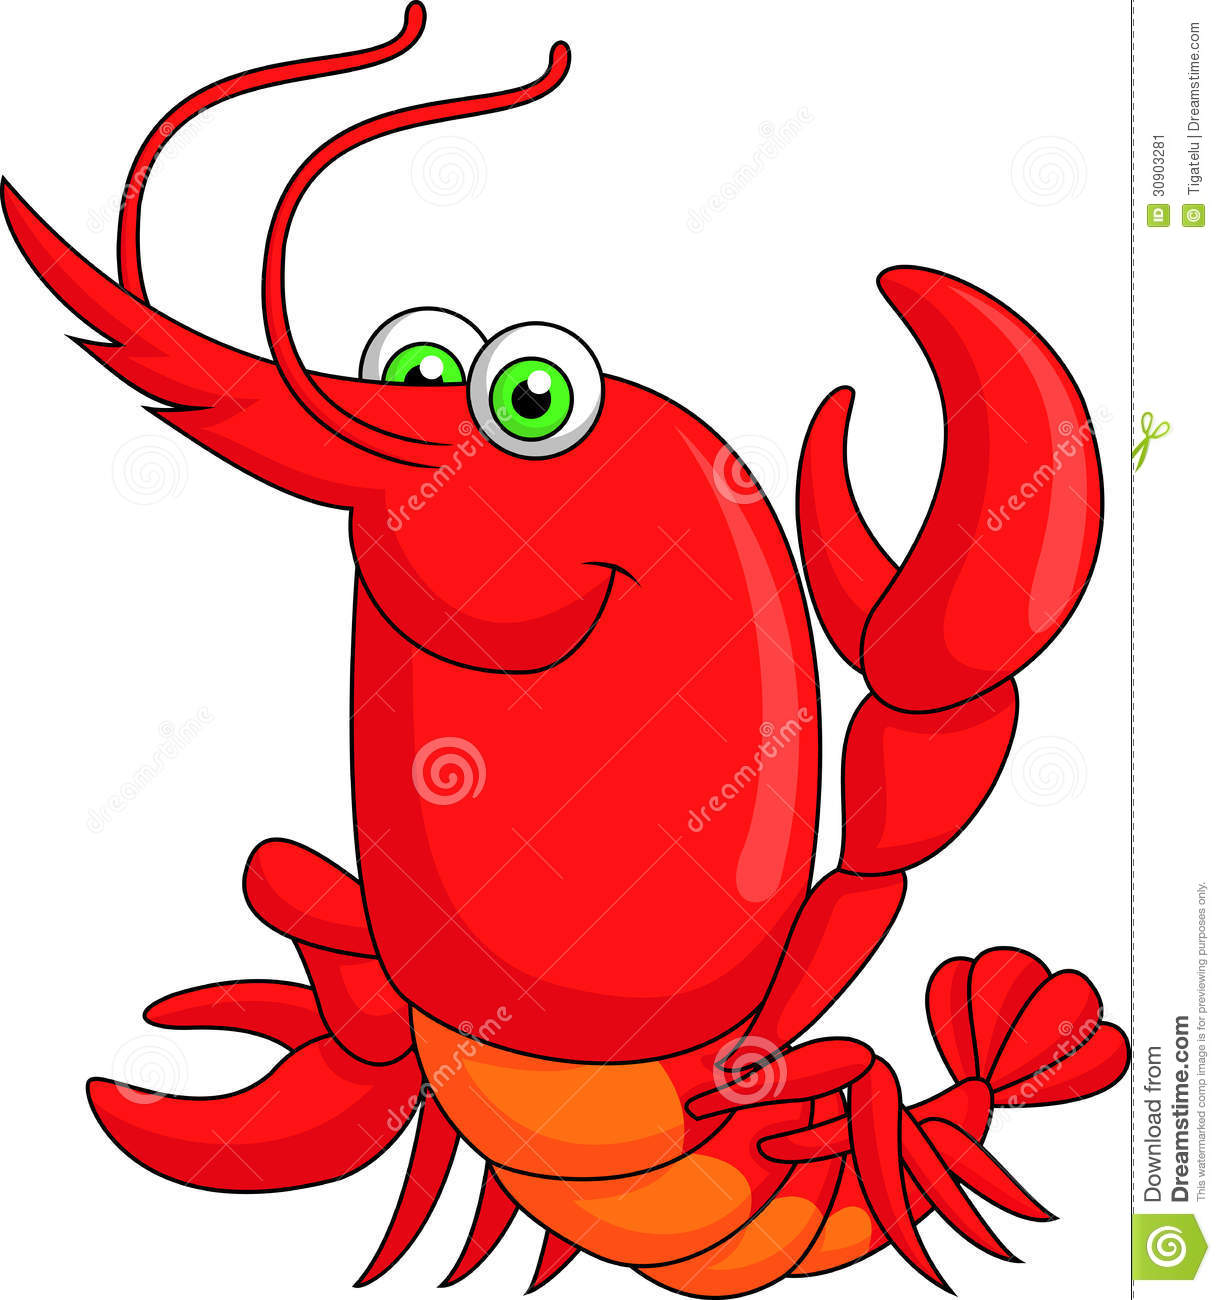 funny lobster clipart - photo #8